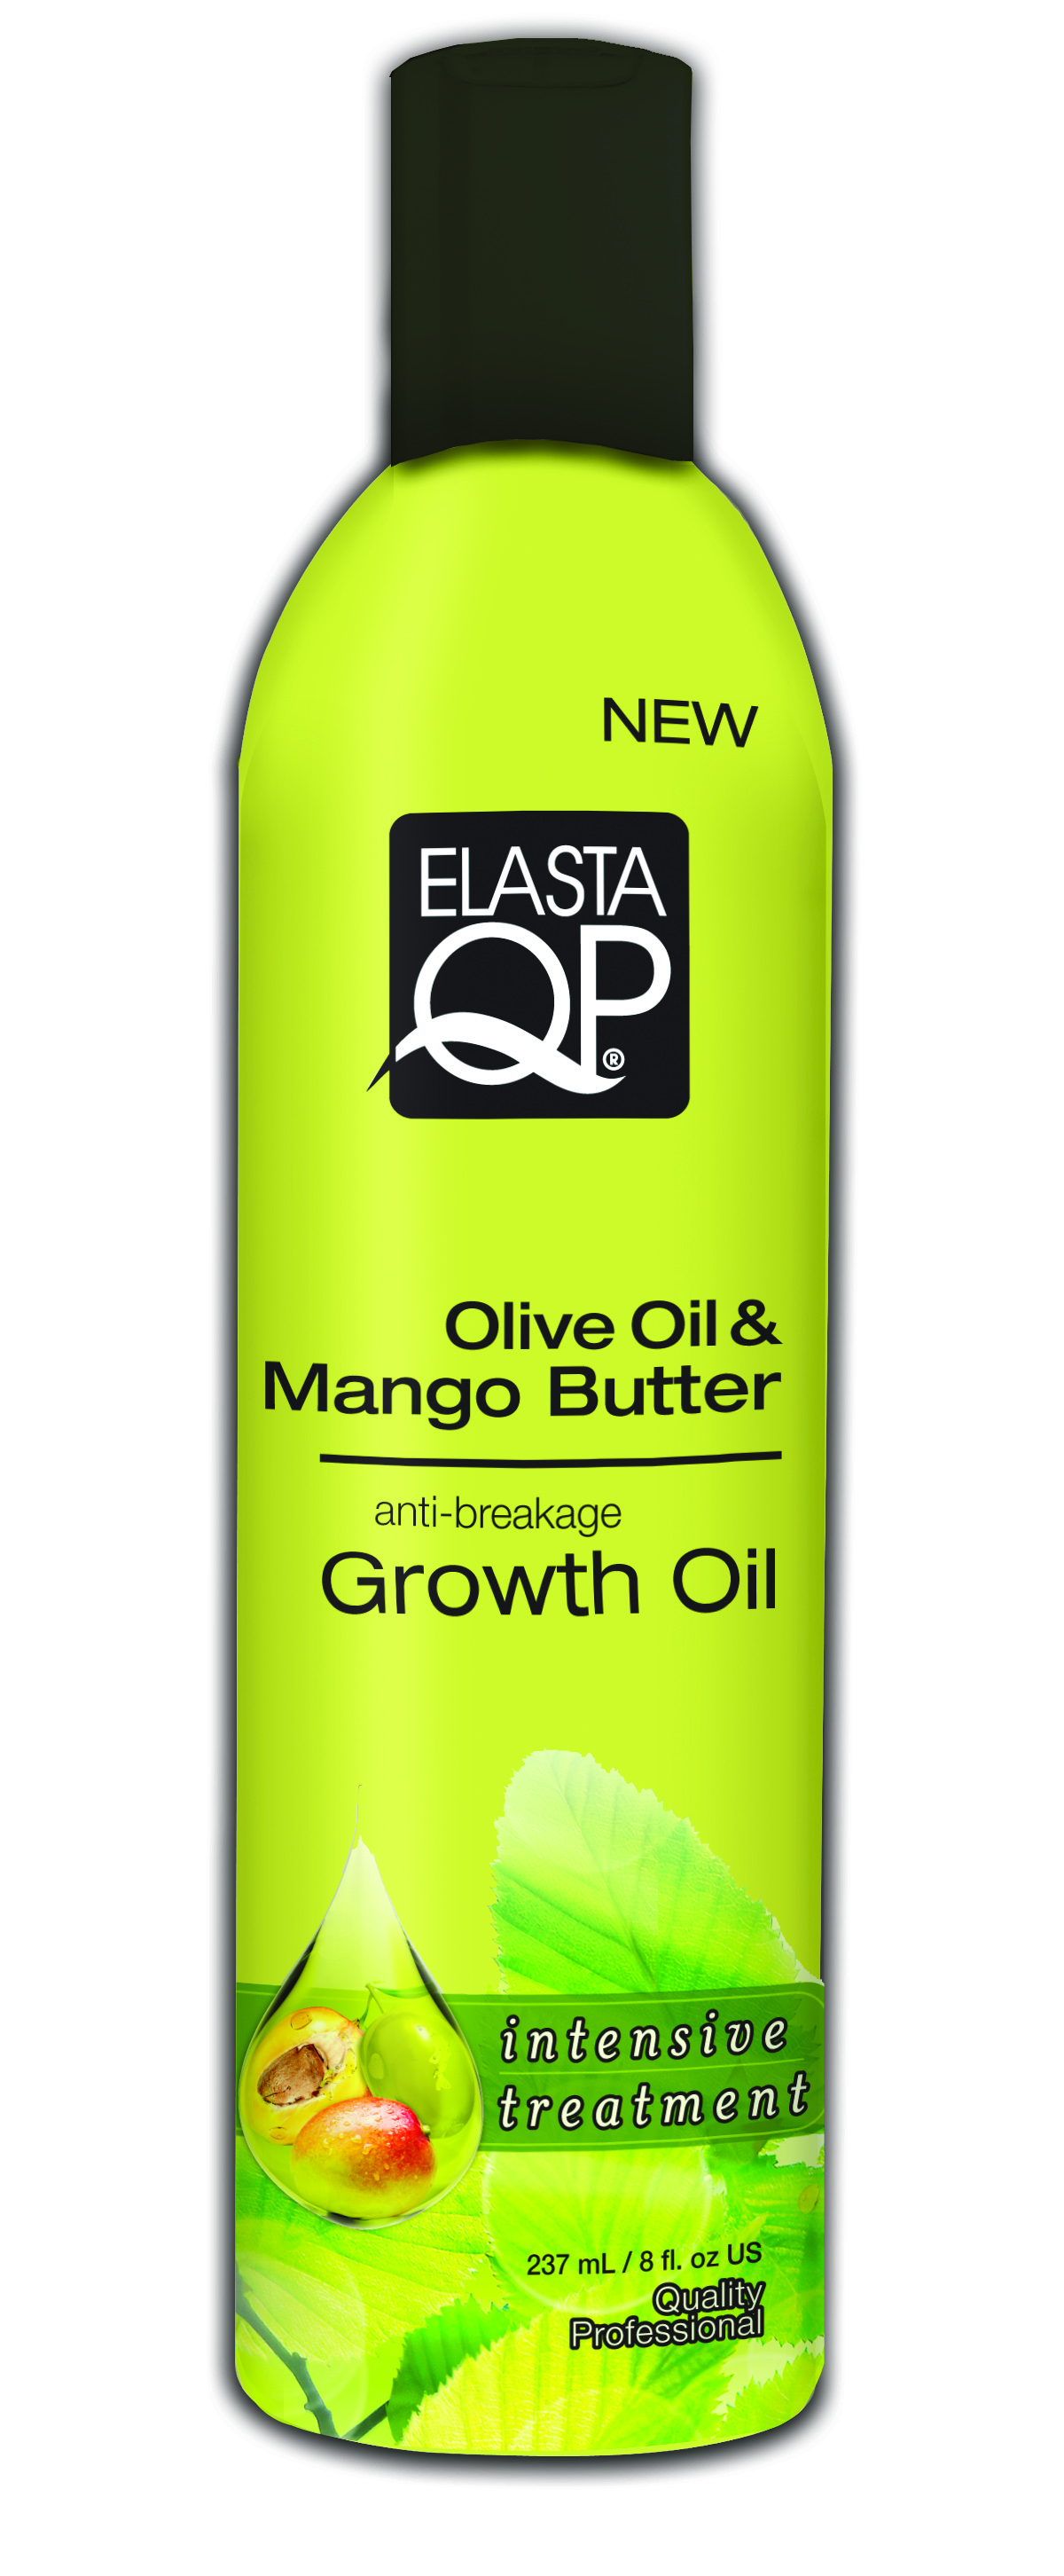 Olive Oil & Mango Butter Anti-Breakage Growth Oil